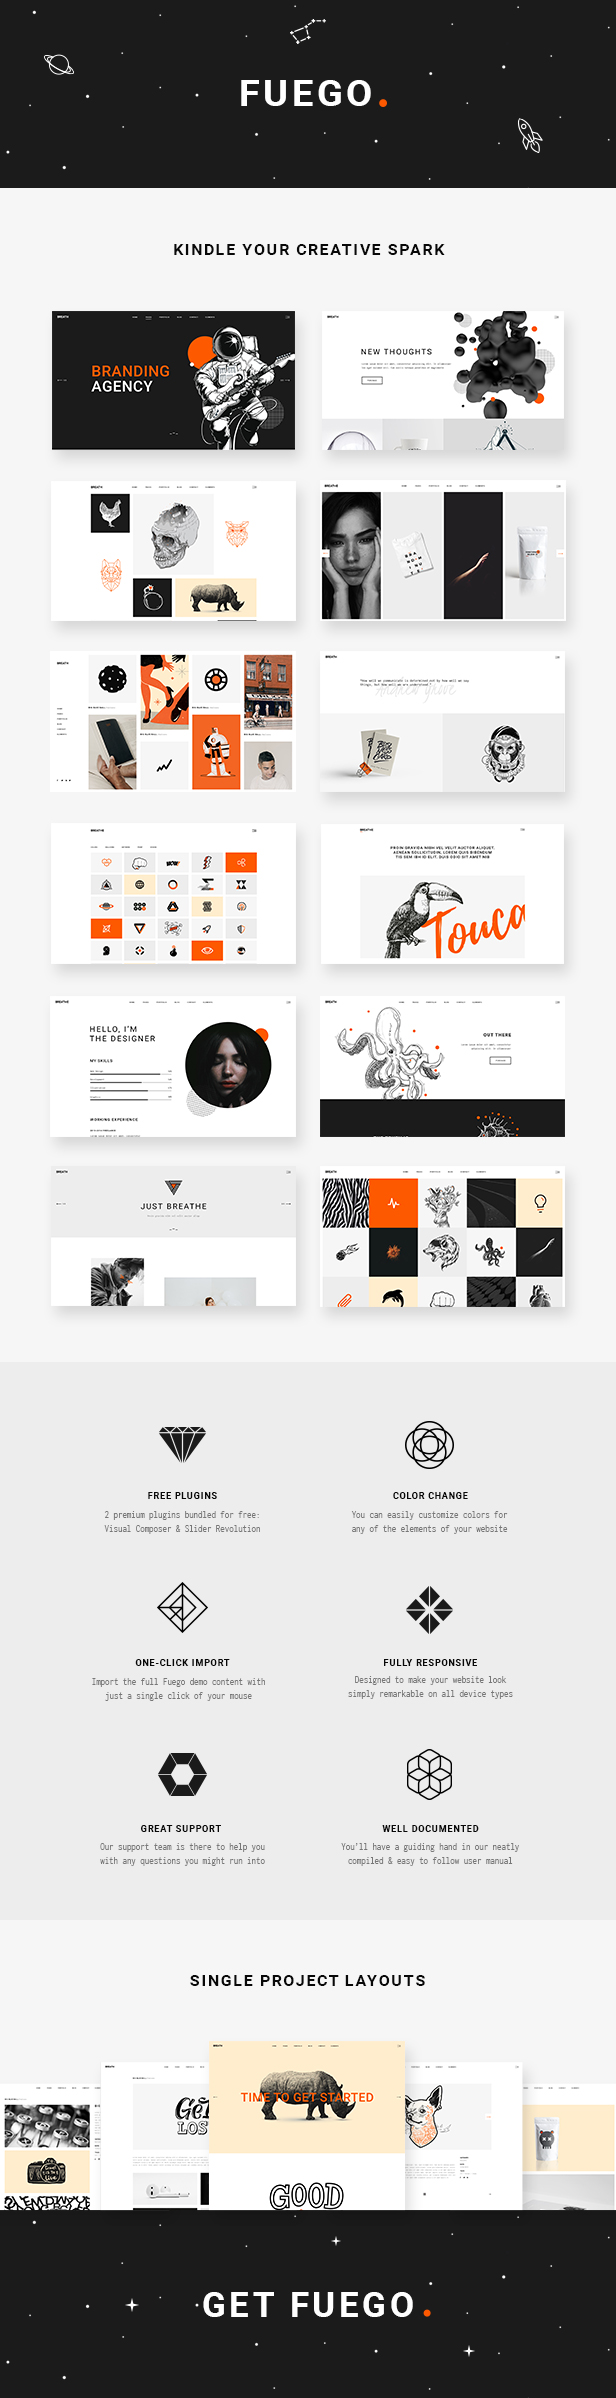 WordPress theme Fuego - A Creative Portfolio Theme for Designers and Agencies (Portfolio)